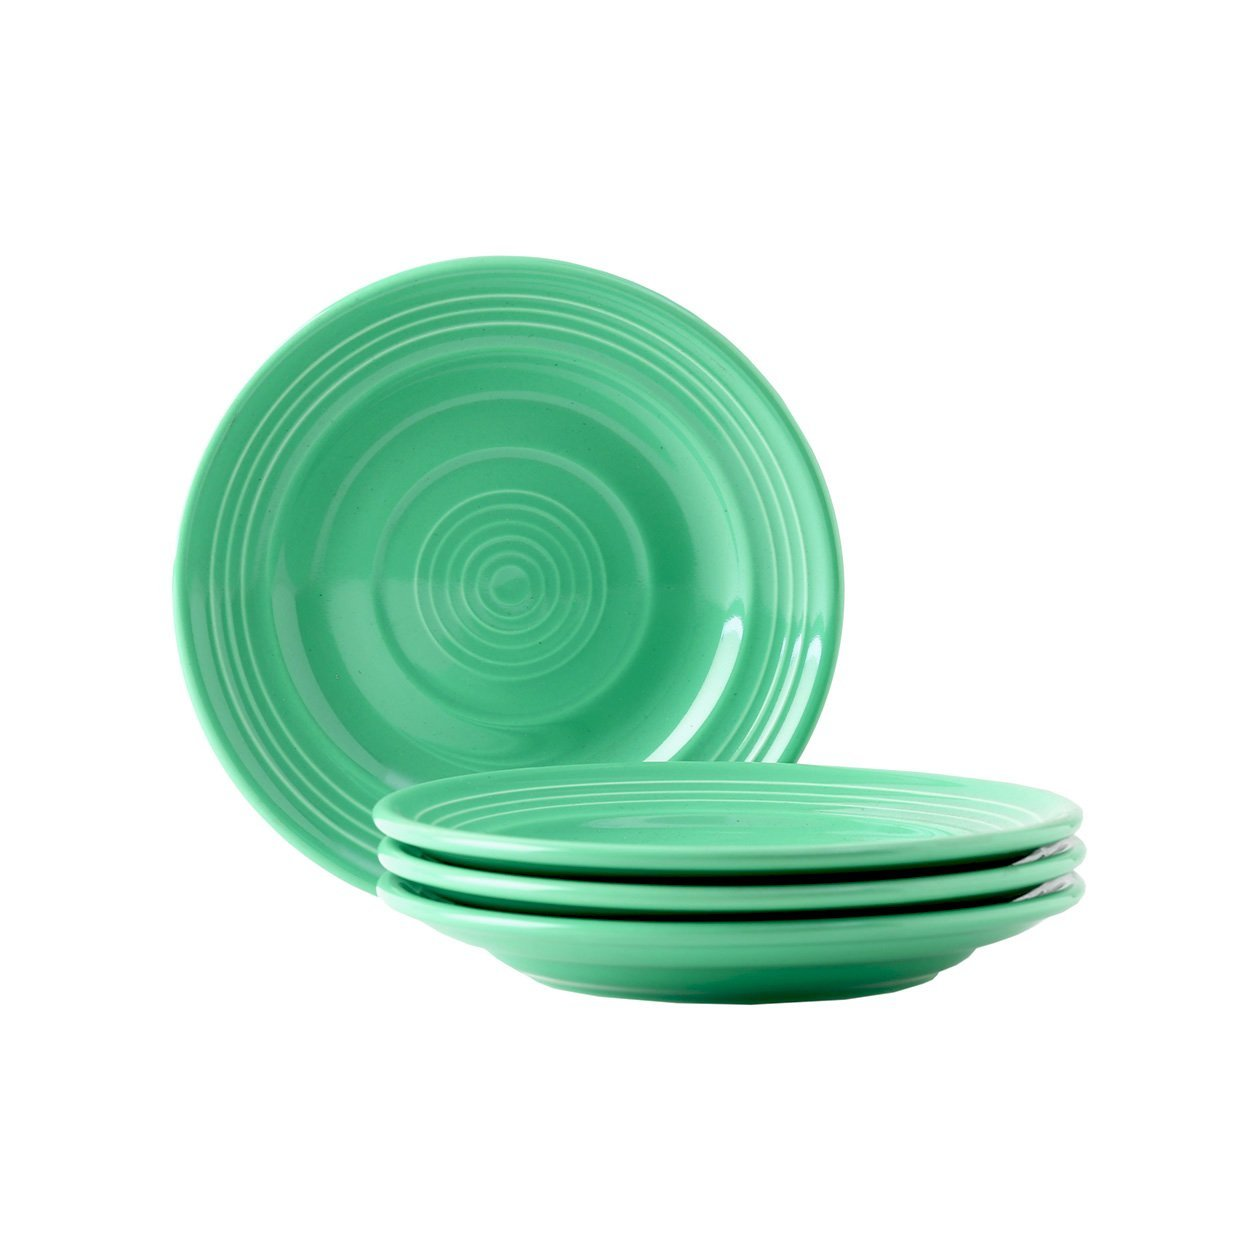 Tuxton Home Concentrix Side Plate (Set of 4), 6 1/4, Cilantro Green; Heavy Duty; Chip Resistant; Lead and Cadmium Free; Freezer to Oven Safe up to 500F